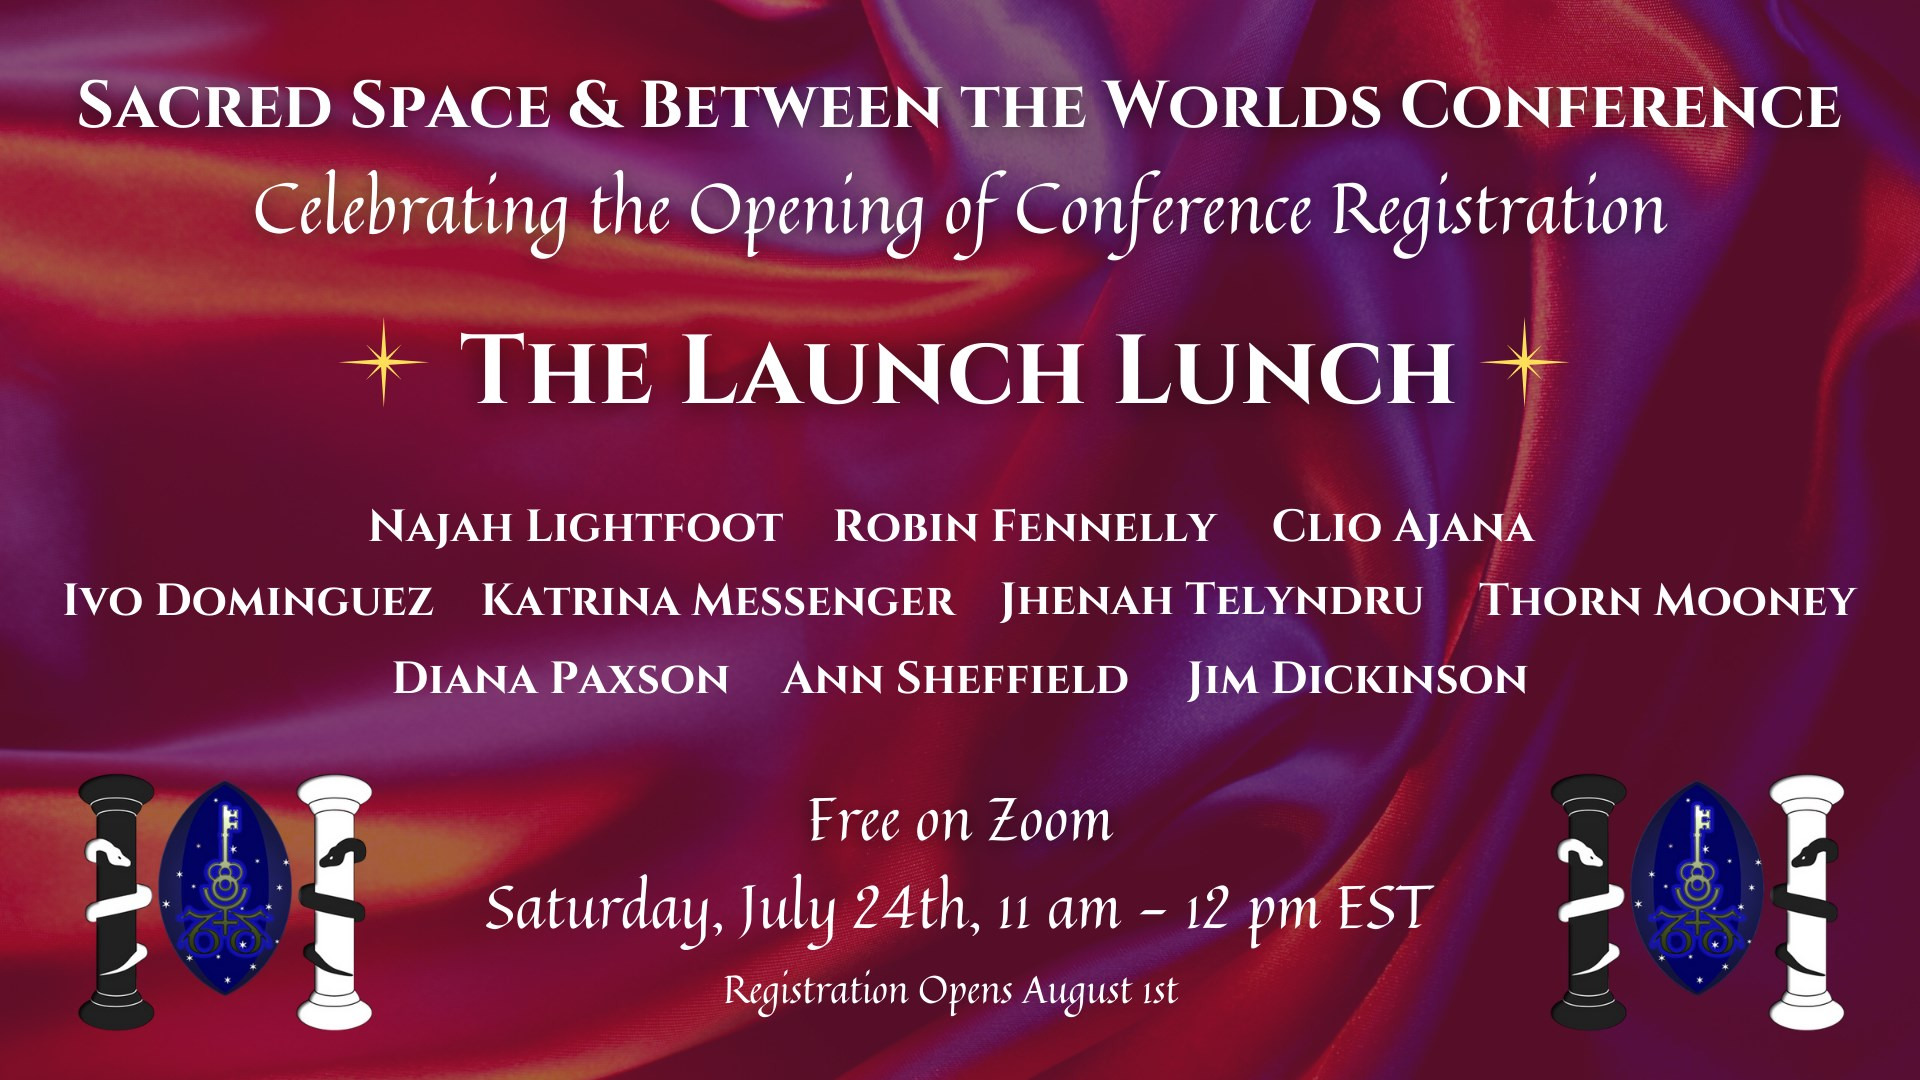 Launch Lunch! Event by Sacred Space Conference, Assembly of the Sacred Wheel and Ivo Dominguez Jr. Online: us02web.zoom.us Public · Anyone on or off Facebook Join a gathering of Sacred Space/Between The Worlds Conference presenters and board members for a celebration of the opening of registration for our 2022 joint conference! Current guests include Najah Lightfoot, Robin Fennelly, Clio Ajana, Ivo Dominguez, Katrina Messenger, Jhenah Telyndru, Thorn Mooney, Diana Paxson, Ann Sheffield and Jim Dickinson! Our guests will be talking about what they're presenting at the conference, what they love about it, and why you should plan to attend. Join us for a relaxed Zoom gathering where questions are welcome and friendly faces abound.